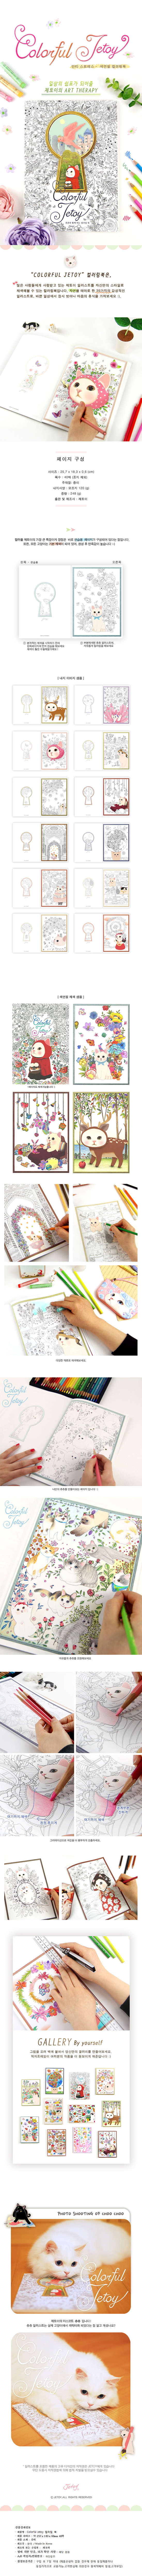 Colorful Jetoy Coloring Book Cute Kitty Cat Partially